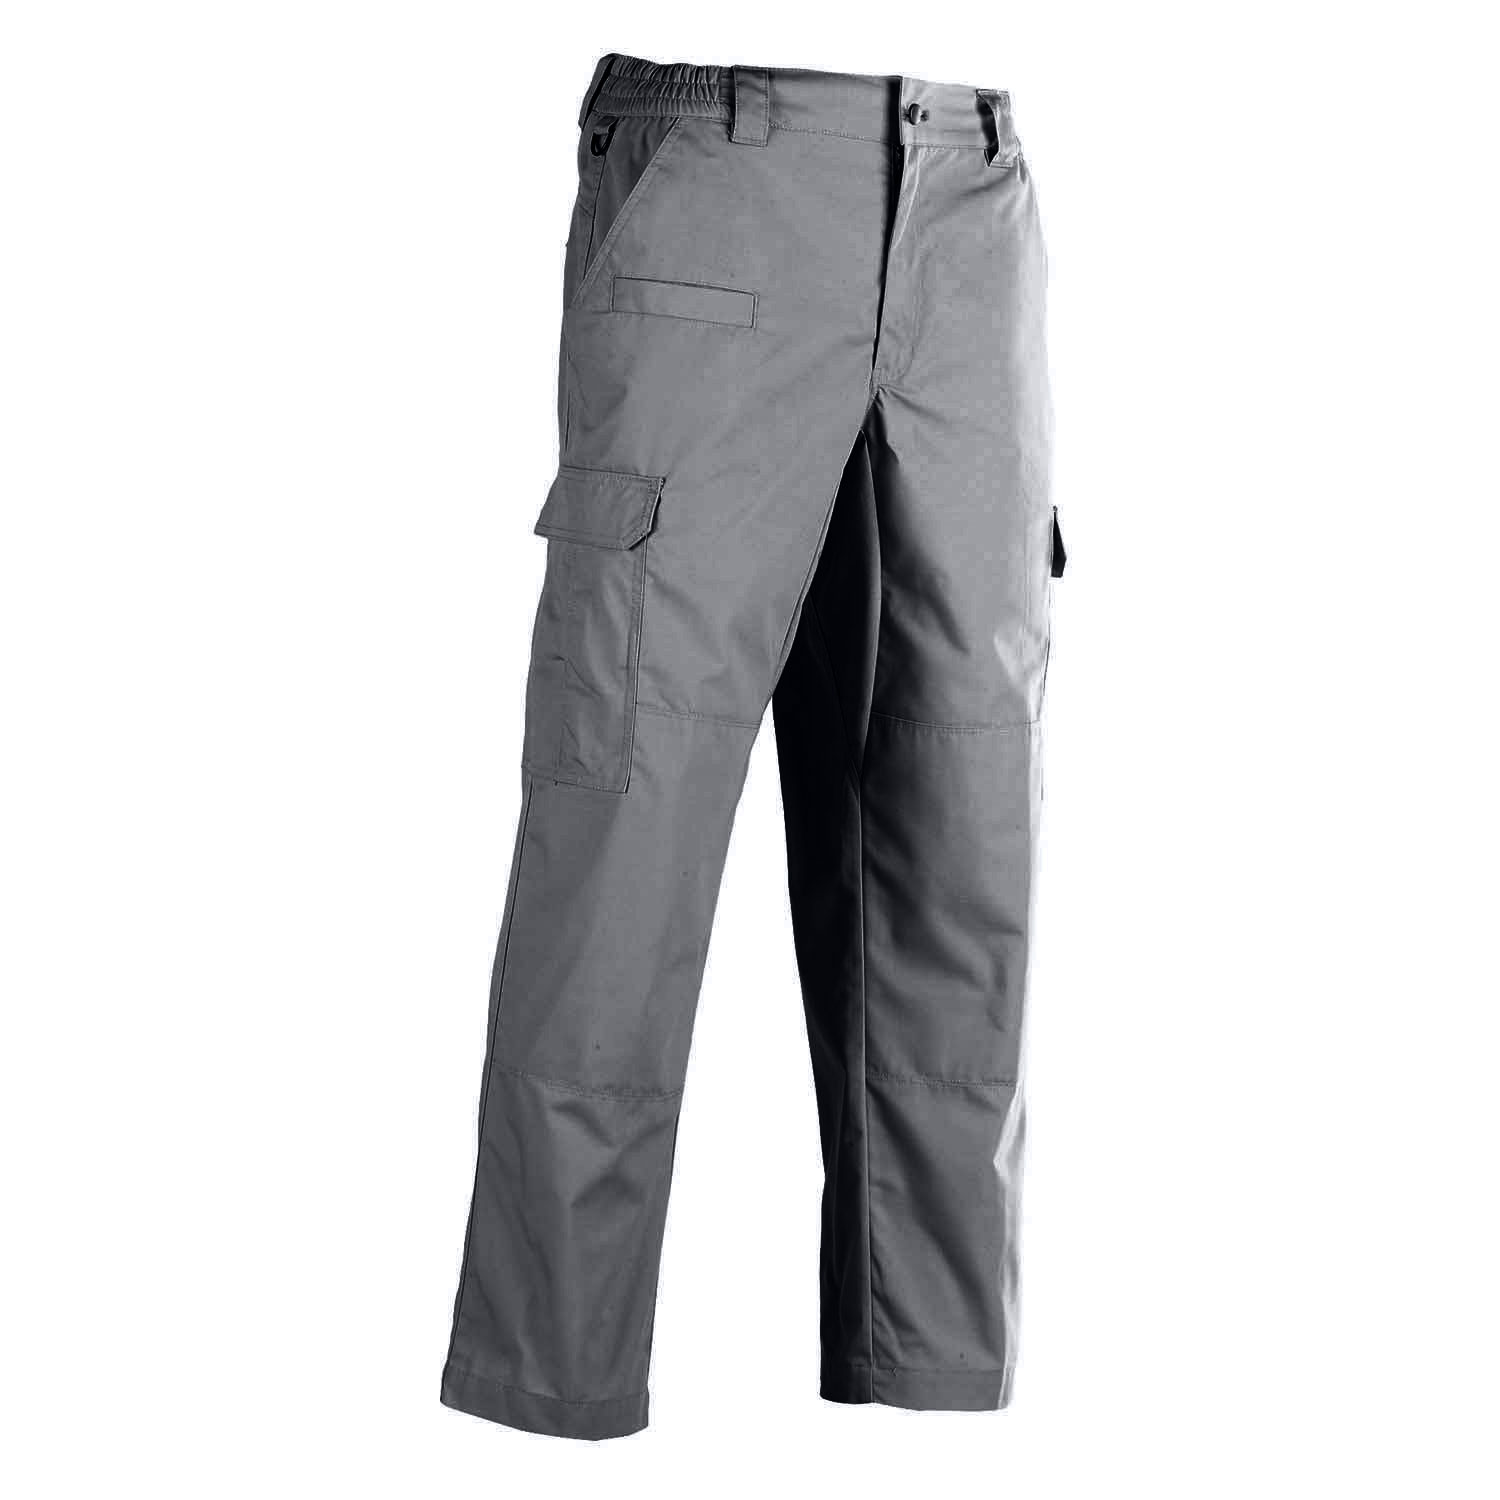 Galls Women's Tac Force Tactical Pants